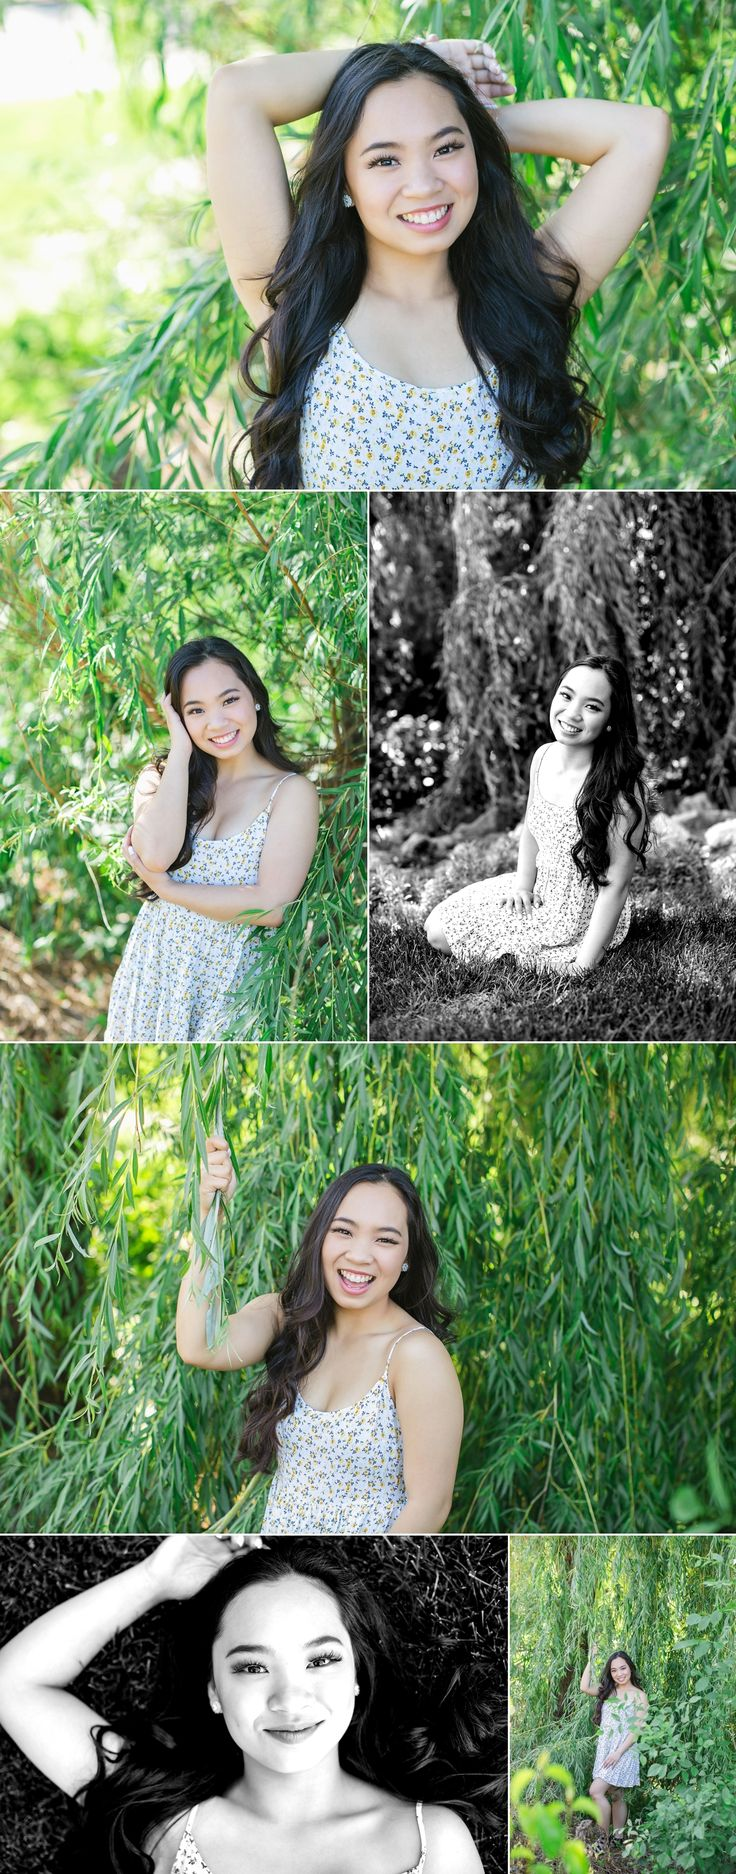 Niki | Burnsville High School Senior Pictures » Twin Cities Senior Portraits | Photography By Nealy